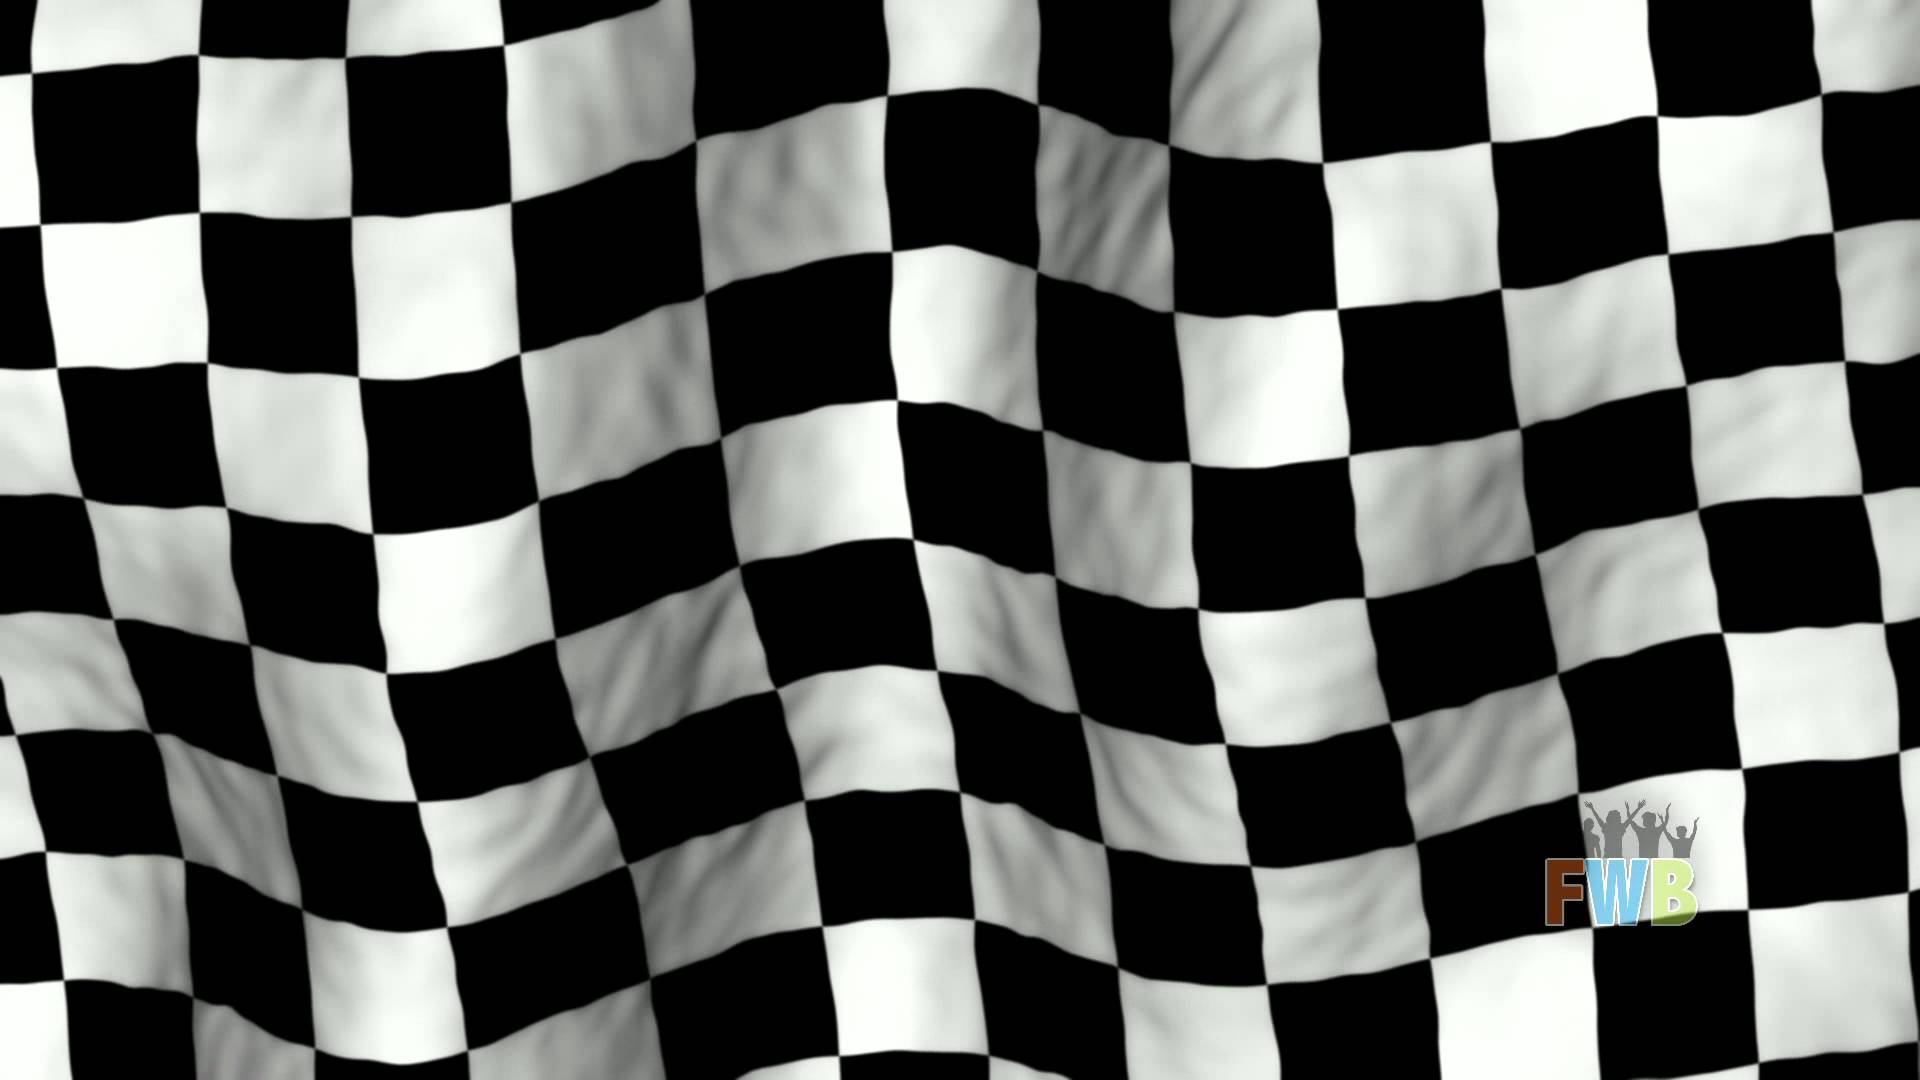 Abstract Worship Background Checkered Flag 1920x1080